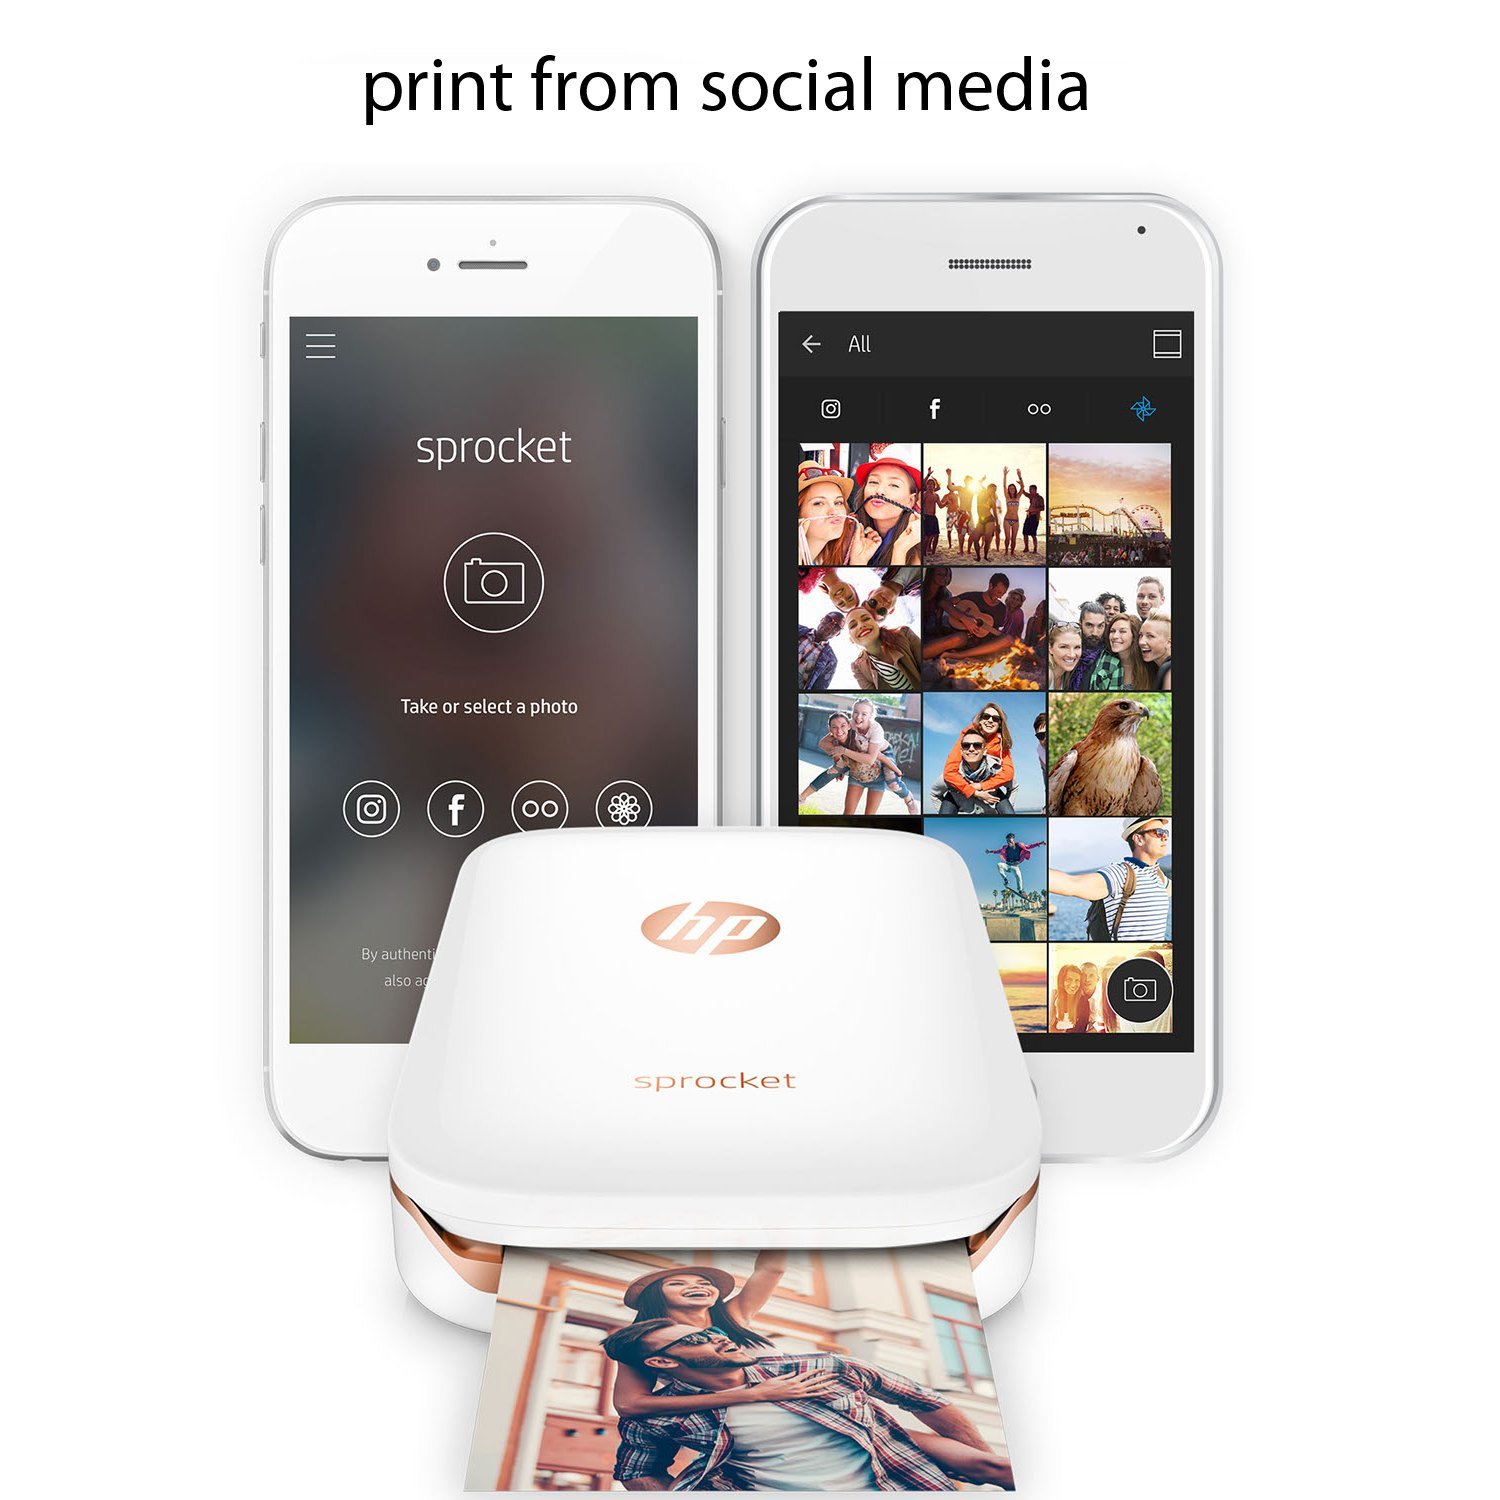 HP Sprocket Photo Printer, Print Social Media Photos on 2x3 Sticky-Backed Paper (White) + Photo Paper (10 Sheets) + USB Cable with Wall Adapter Charger + HeroFiber Ultra Gentle Cleaning Cloth by HeroFiber (Image #4)